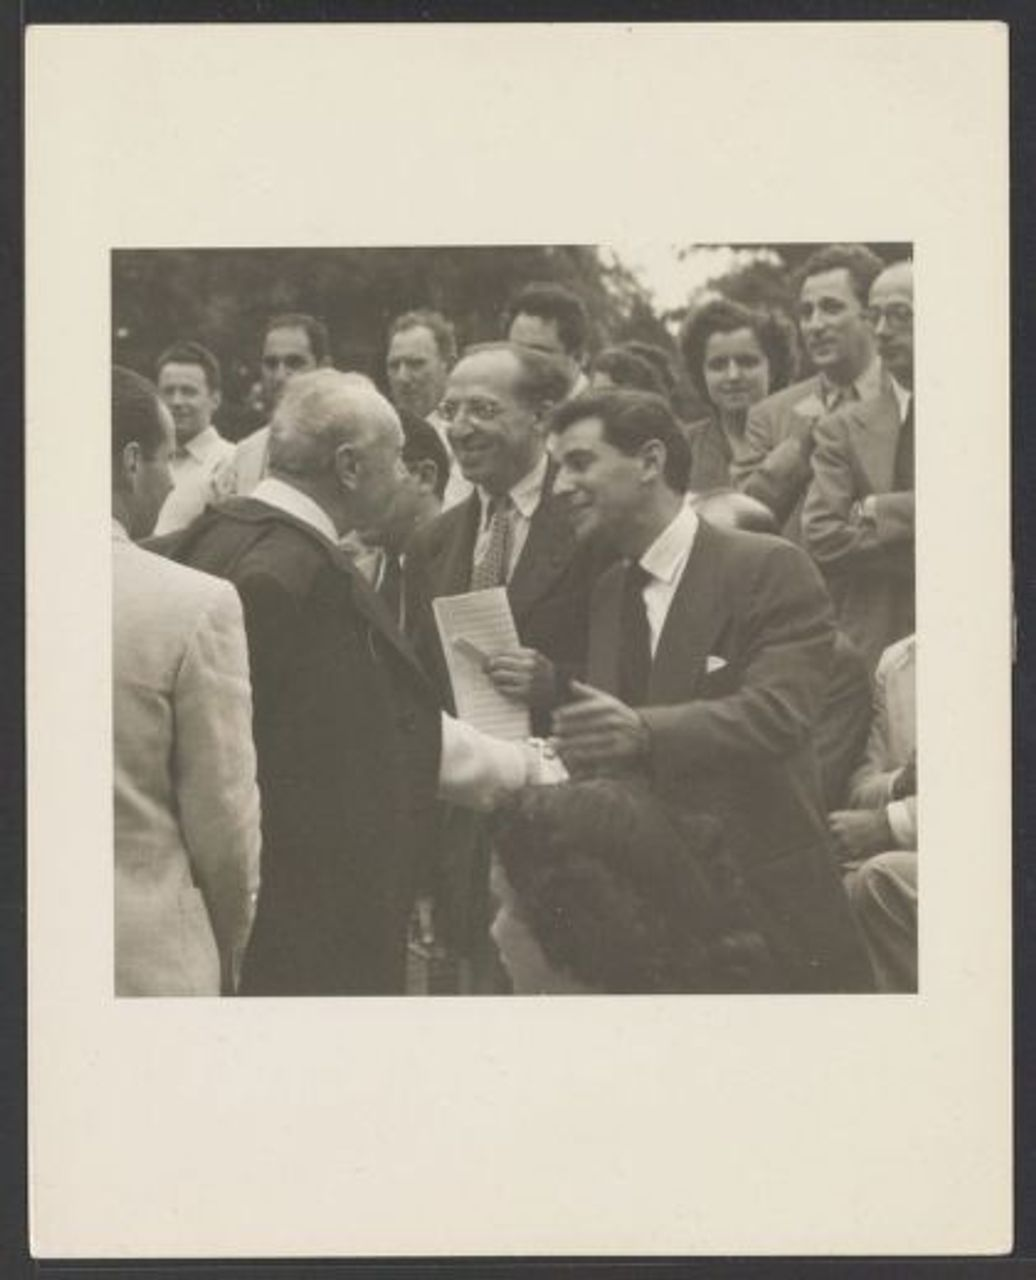 Copland, Koussevitzky, and Bernstein at Tanglewood, 1941